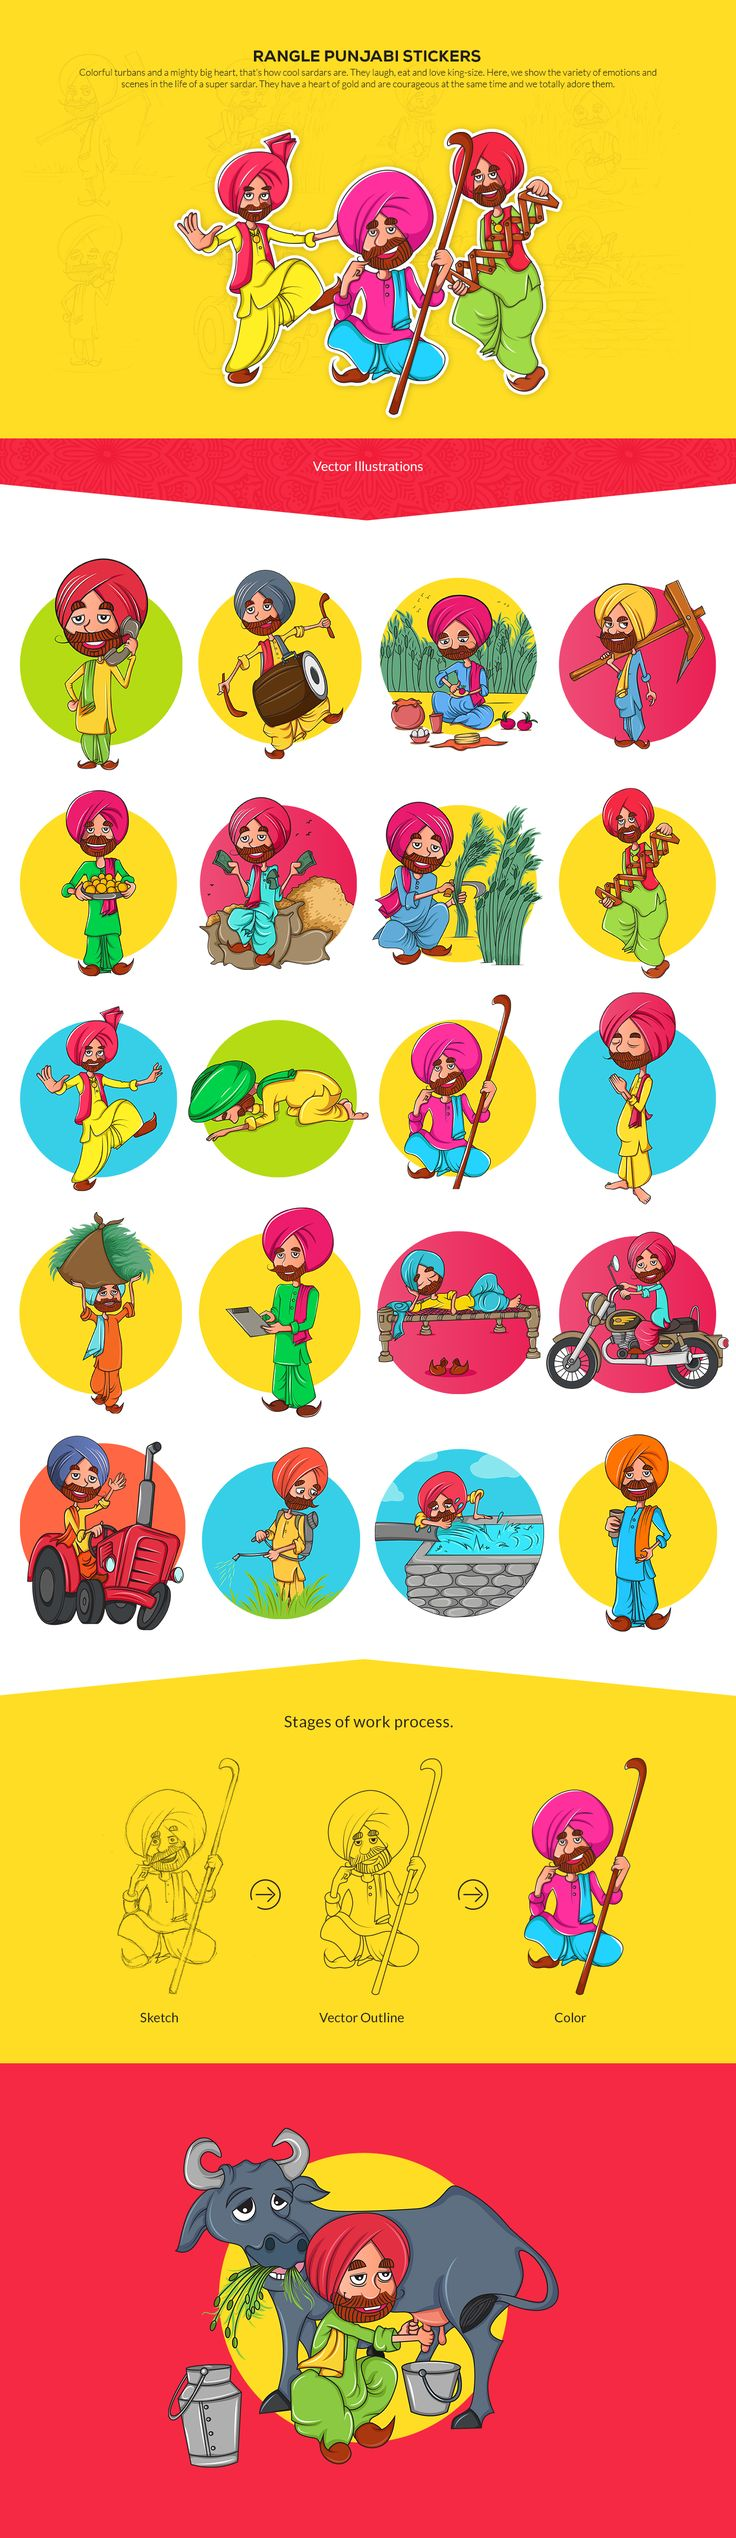 Rangle Punjabi Stickers Design  Colorful turbans and a mighty big heart, that's how cool sardars are. They laugh, eat and love king-size. Here, we show the variety of emotions and scenes in the life of a super sardar. They have a heart of gold and are courageous at the same time and we totally adore them.